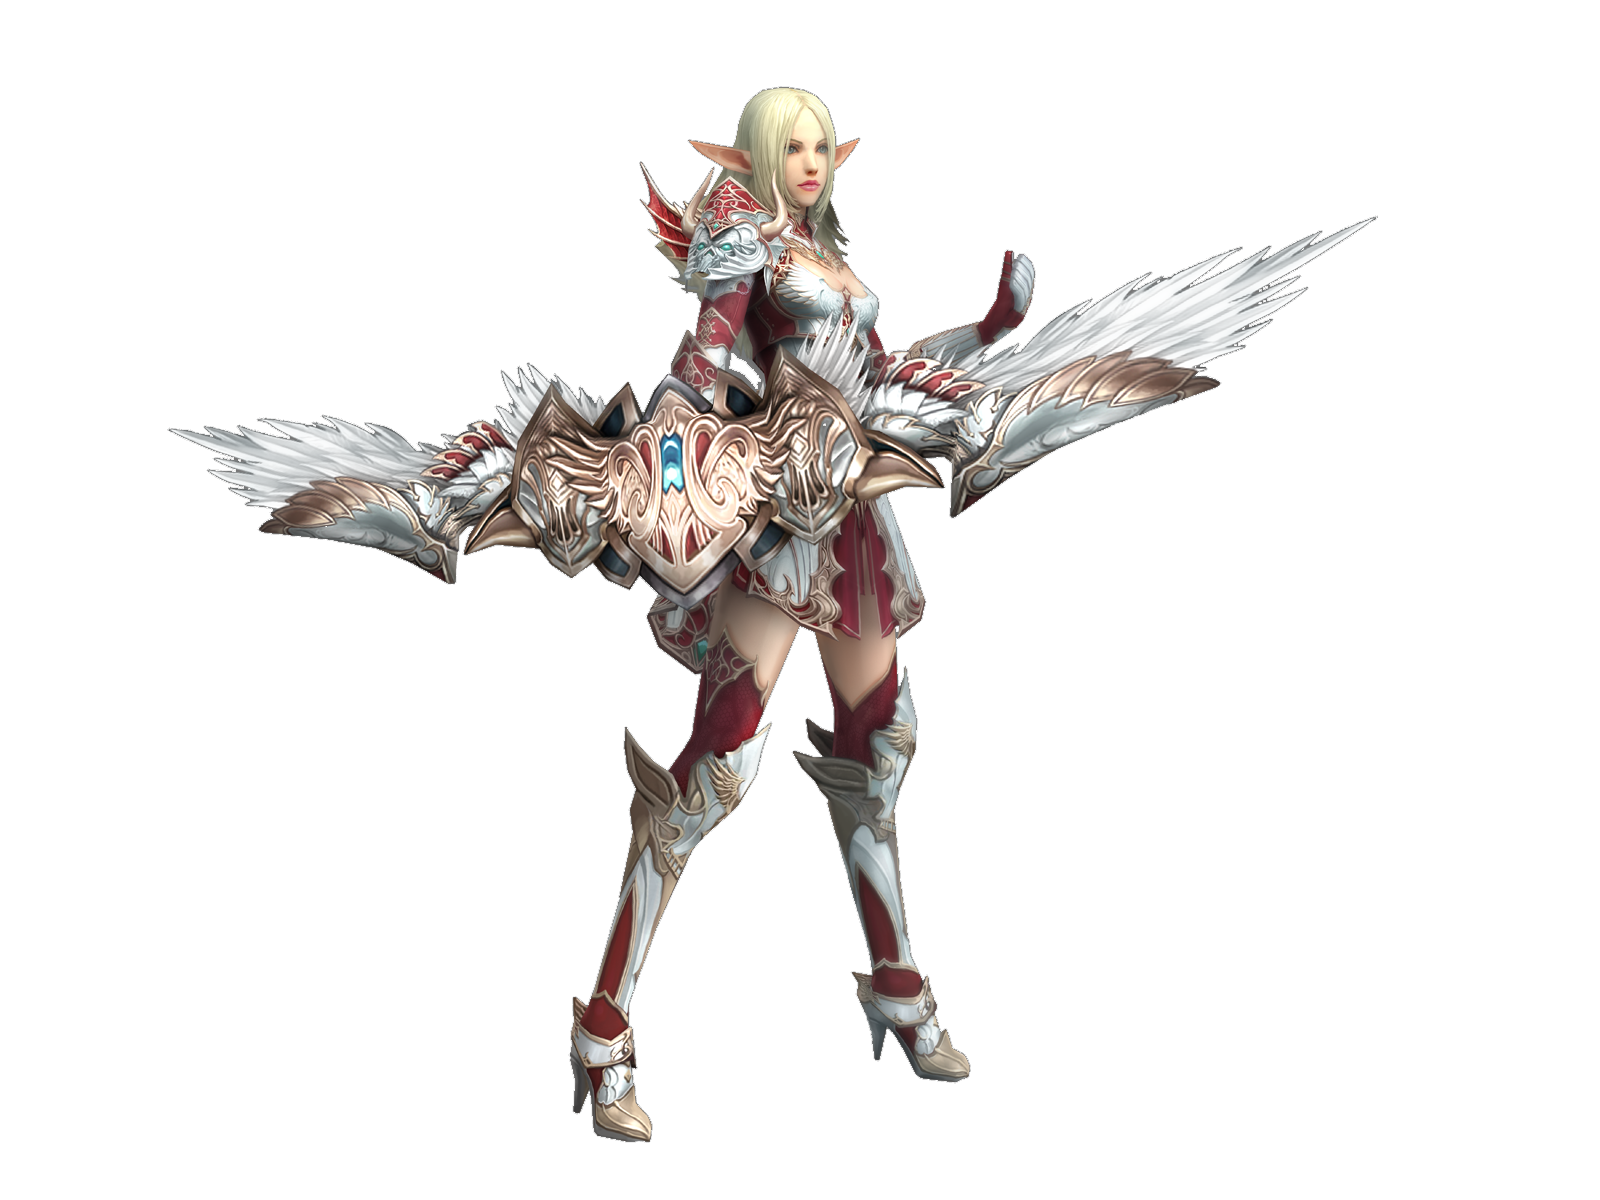 http://lineage2-game.ucoz.com/templates/race/Female_Elf.png